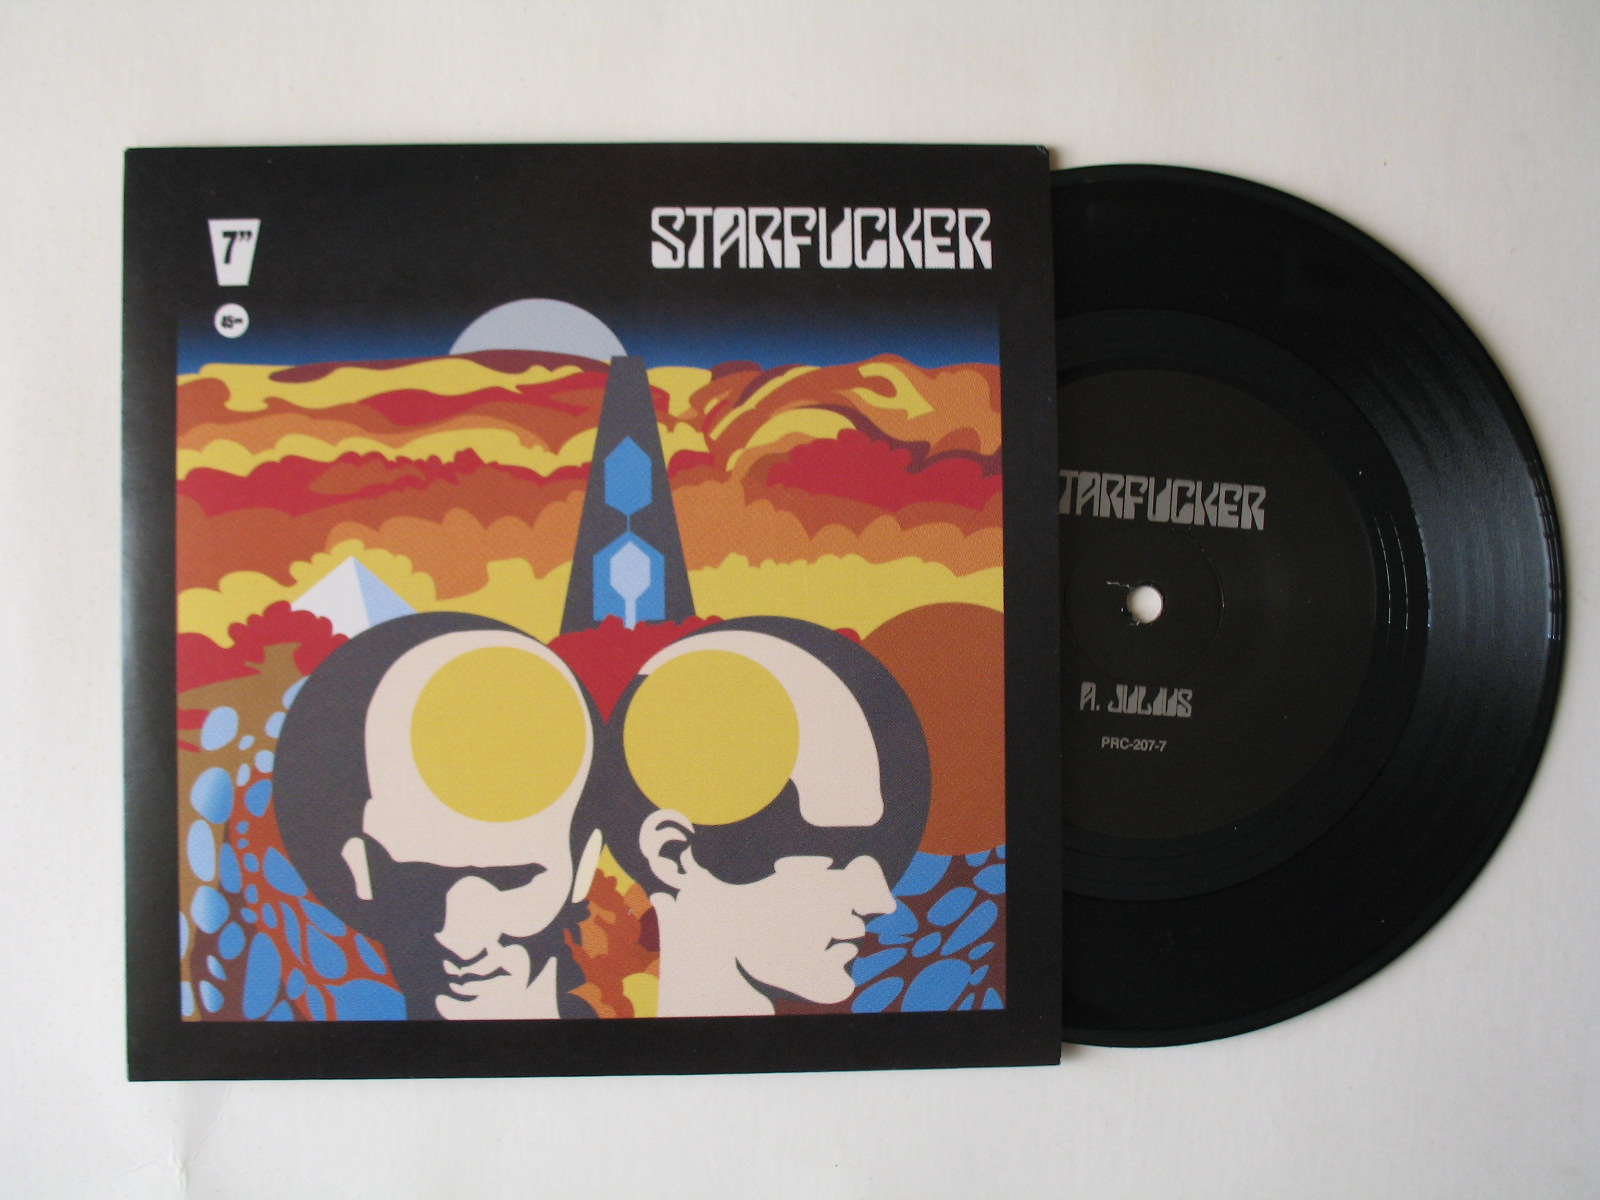 Starfucker debut on Polyvinyl with amazing 7-inch